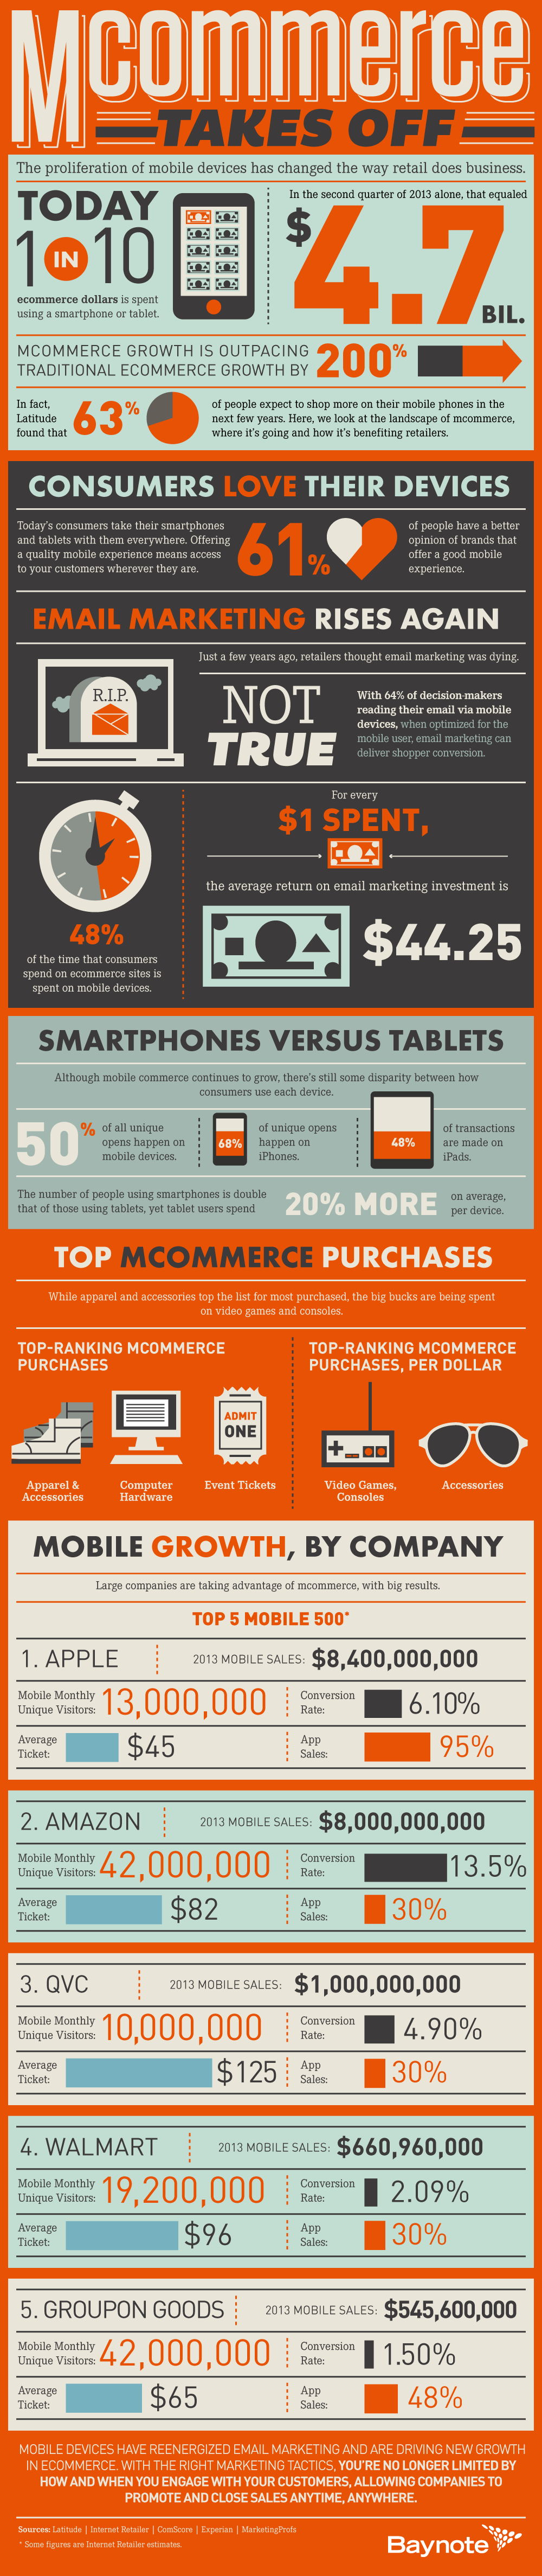 Baynote_mCommerce_Takes_Off_Infographic_FINAL